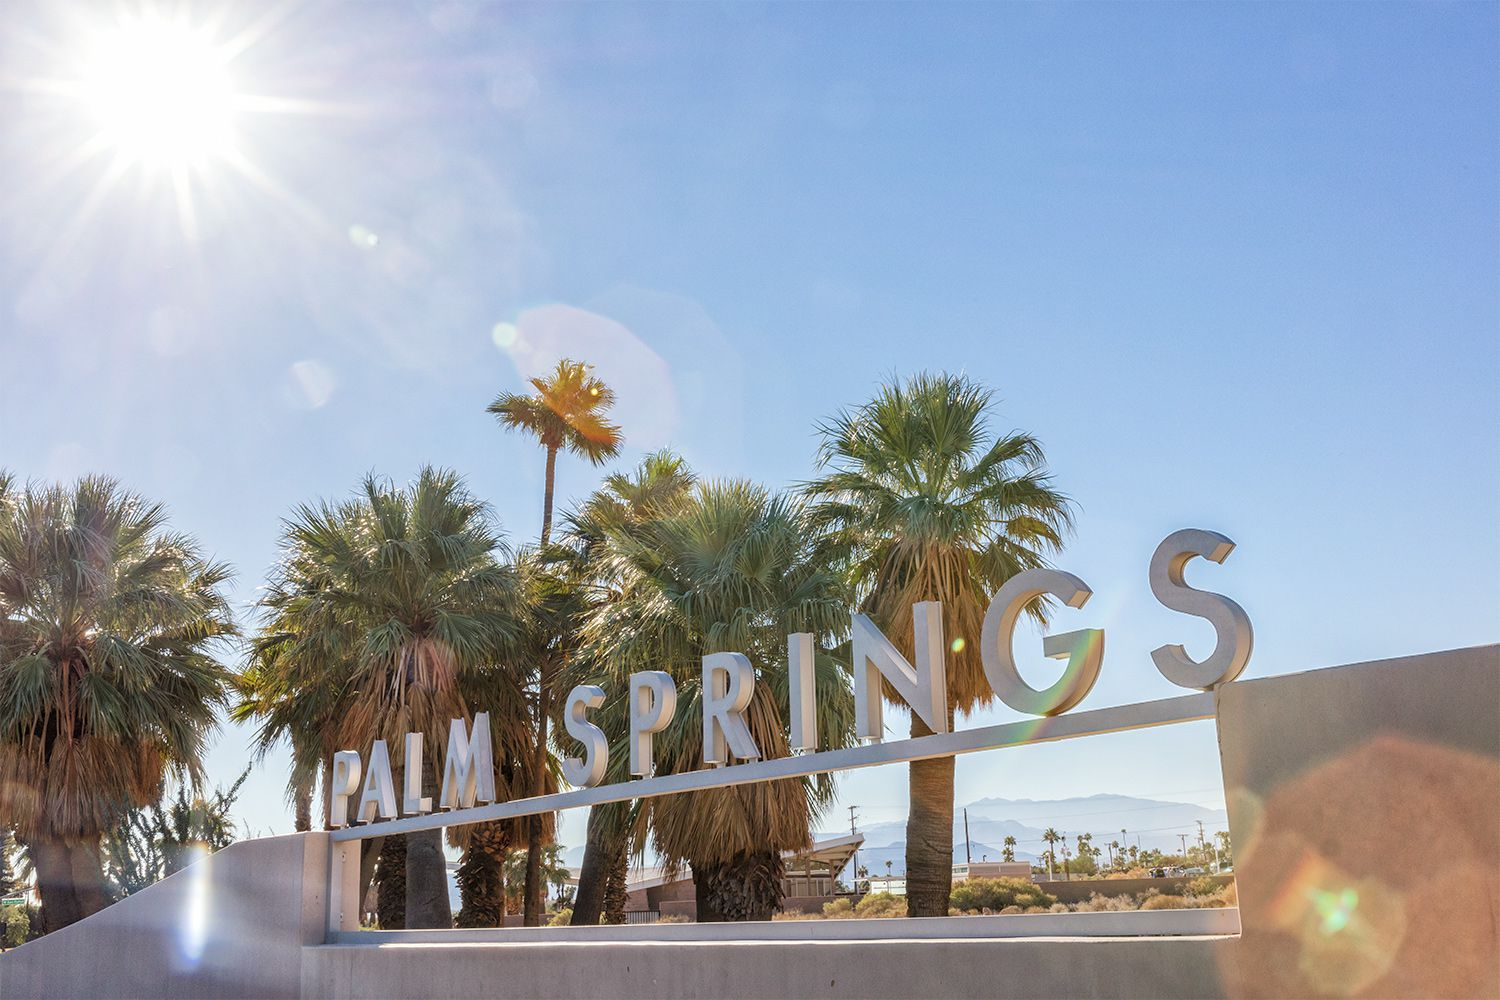 How to travel between los angeles and palm springs for Travel to palm springs